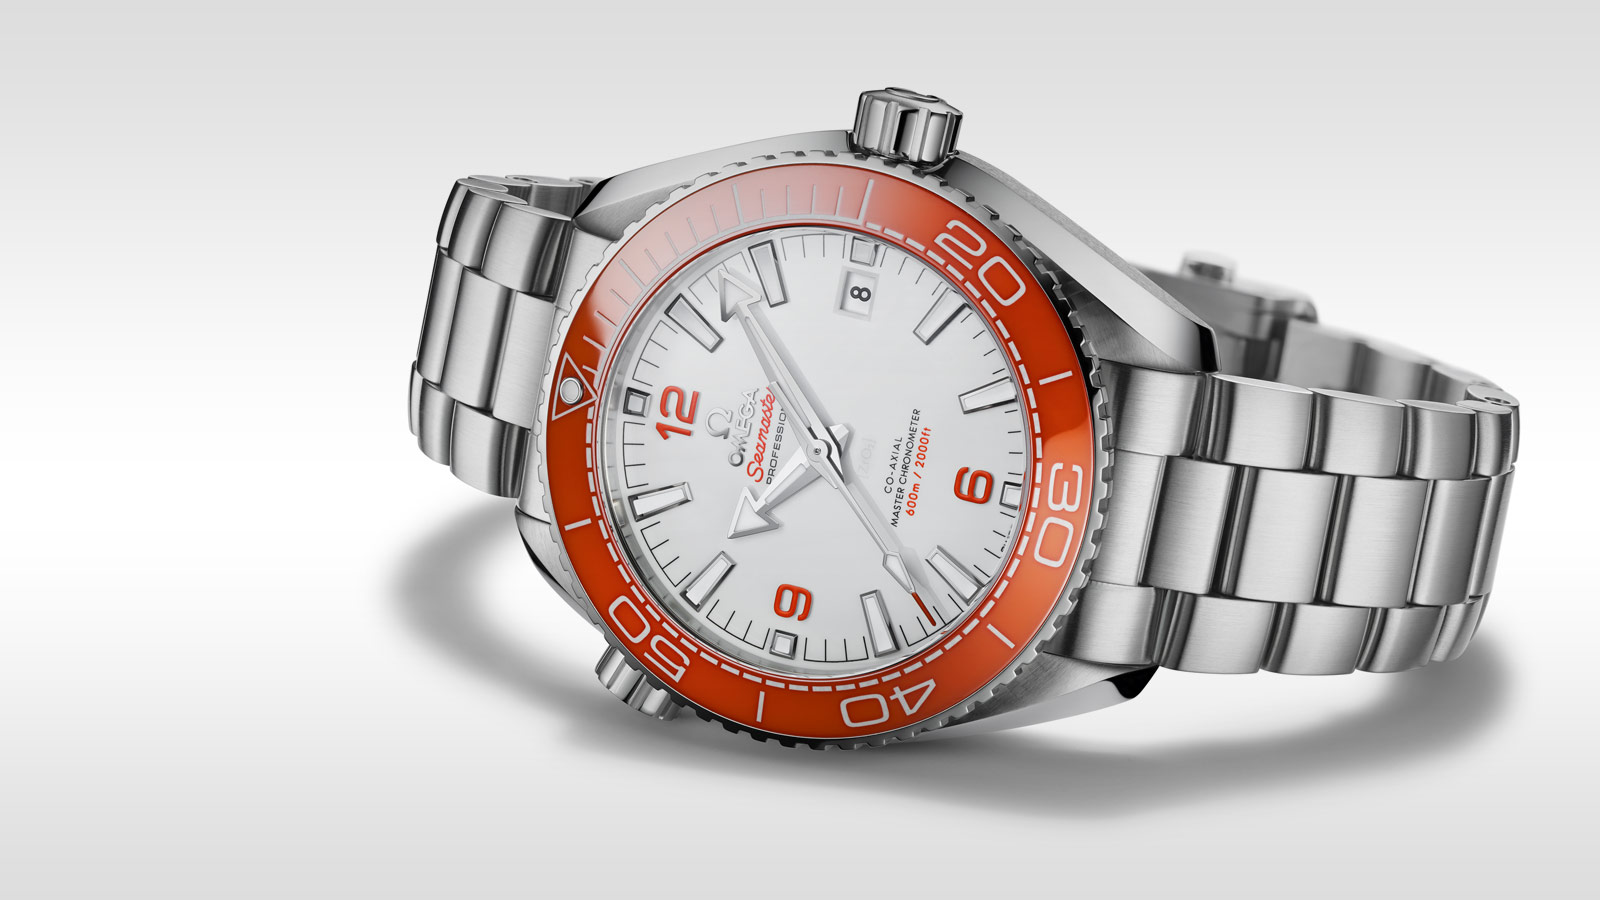 Seamaster Planet Ocean 600M Planet Ocean 600M Omega Co‑Axial Master Chronometer 43.5 mm - 215.30.44.21.04.001 - View 1